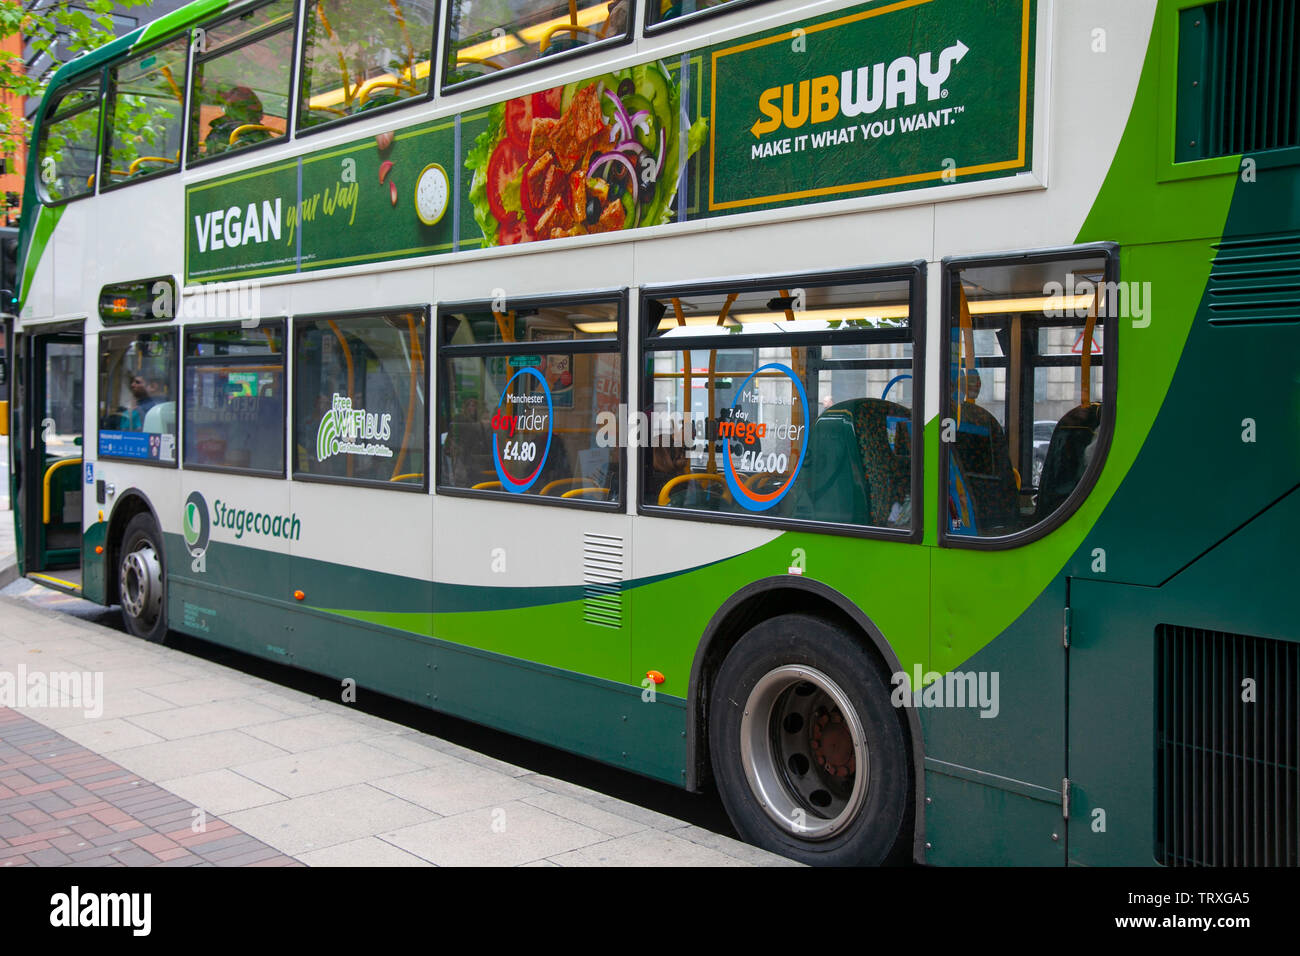 Subway vegan advertising on Stagecoach bus in Manchester, UK - Stock Image